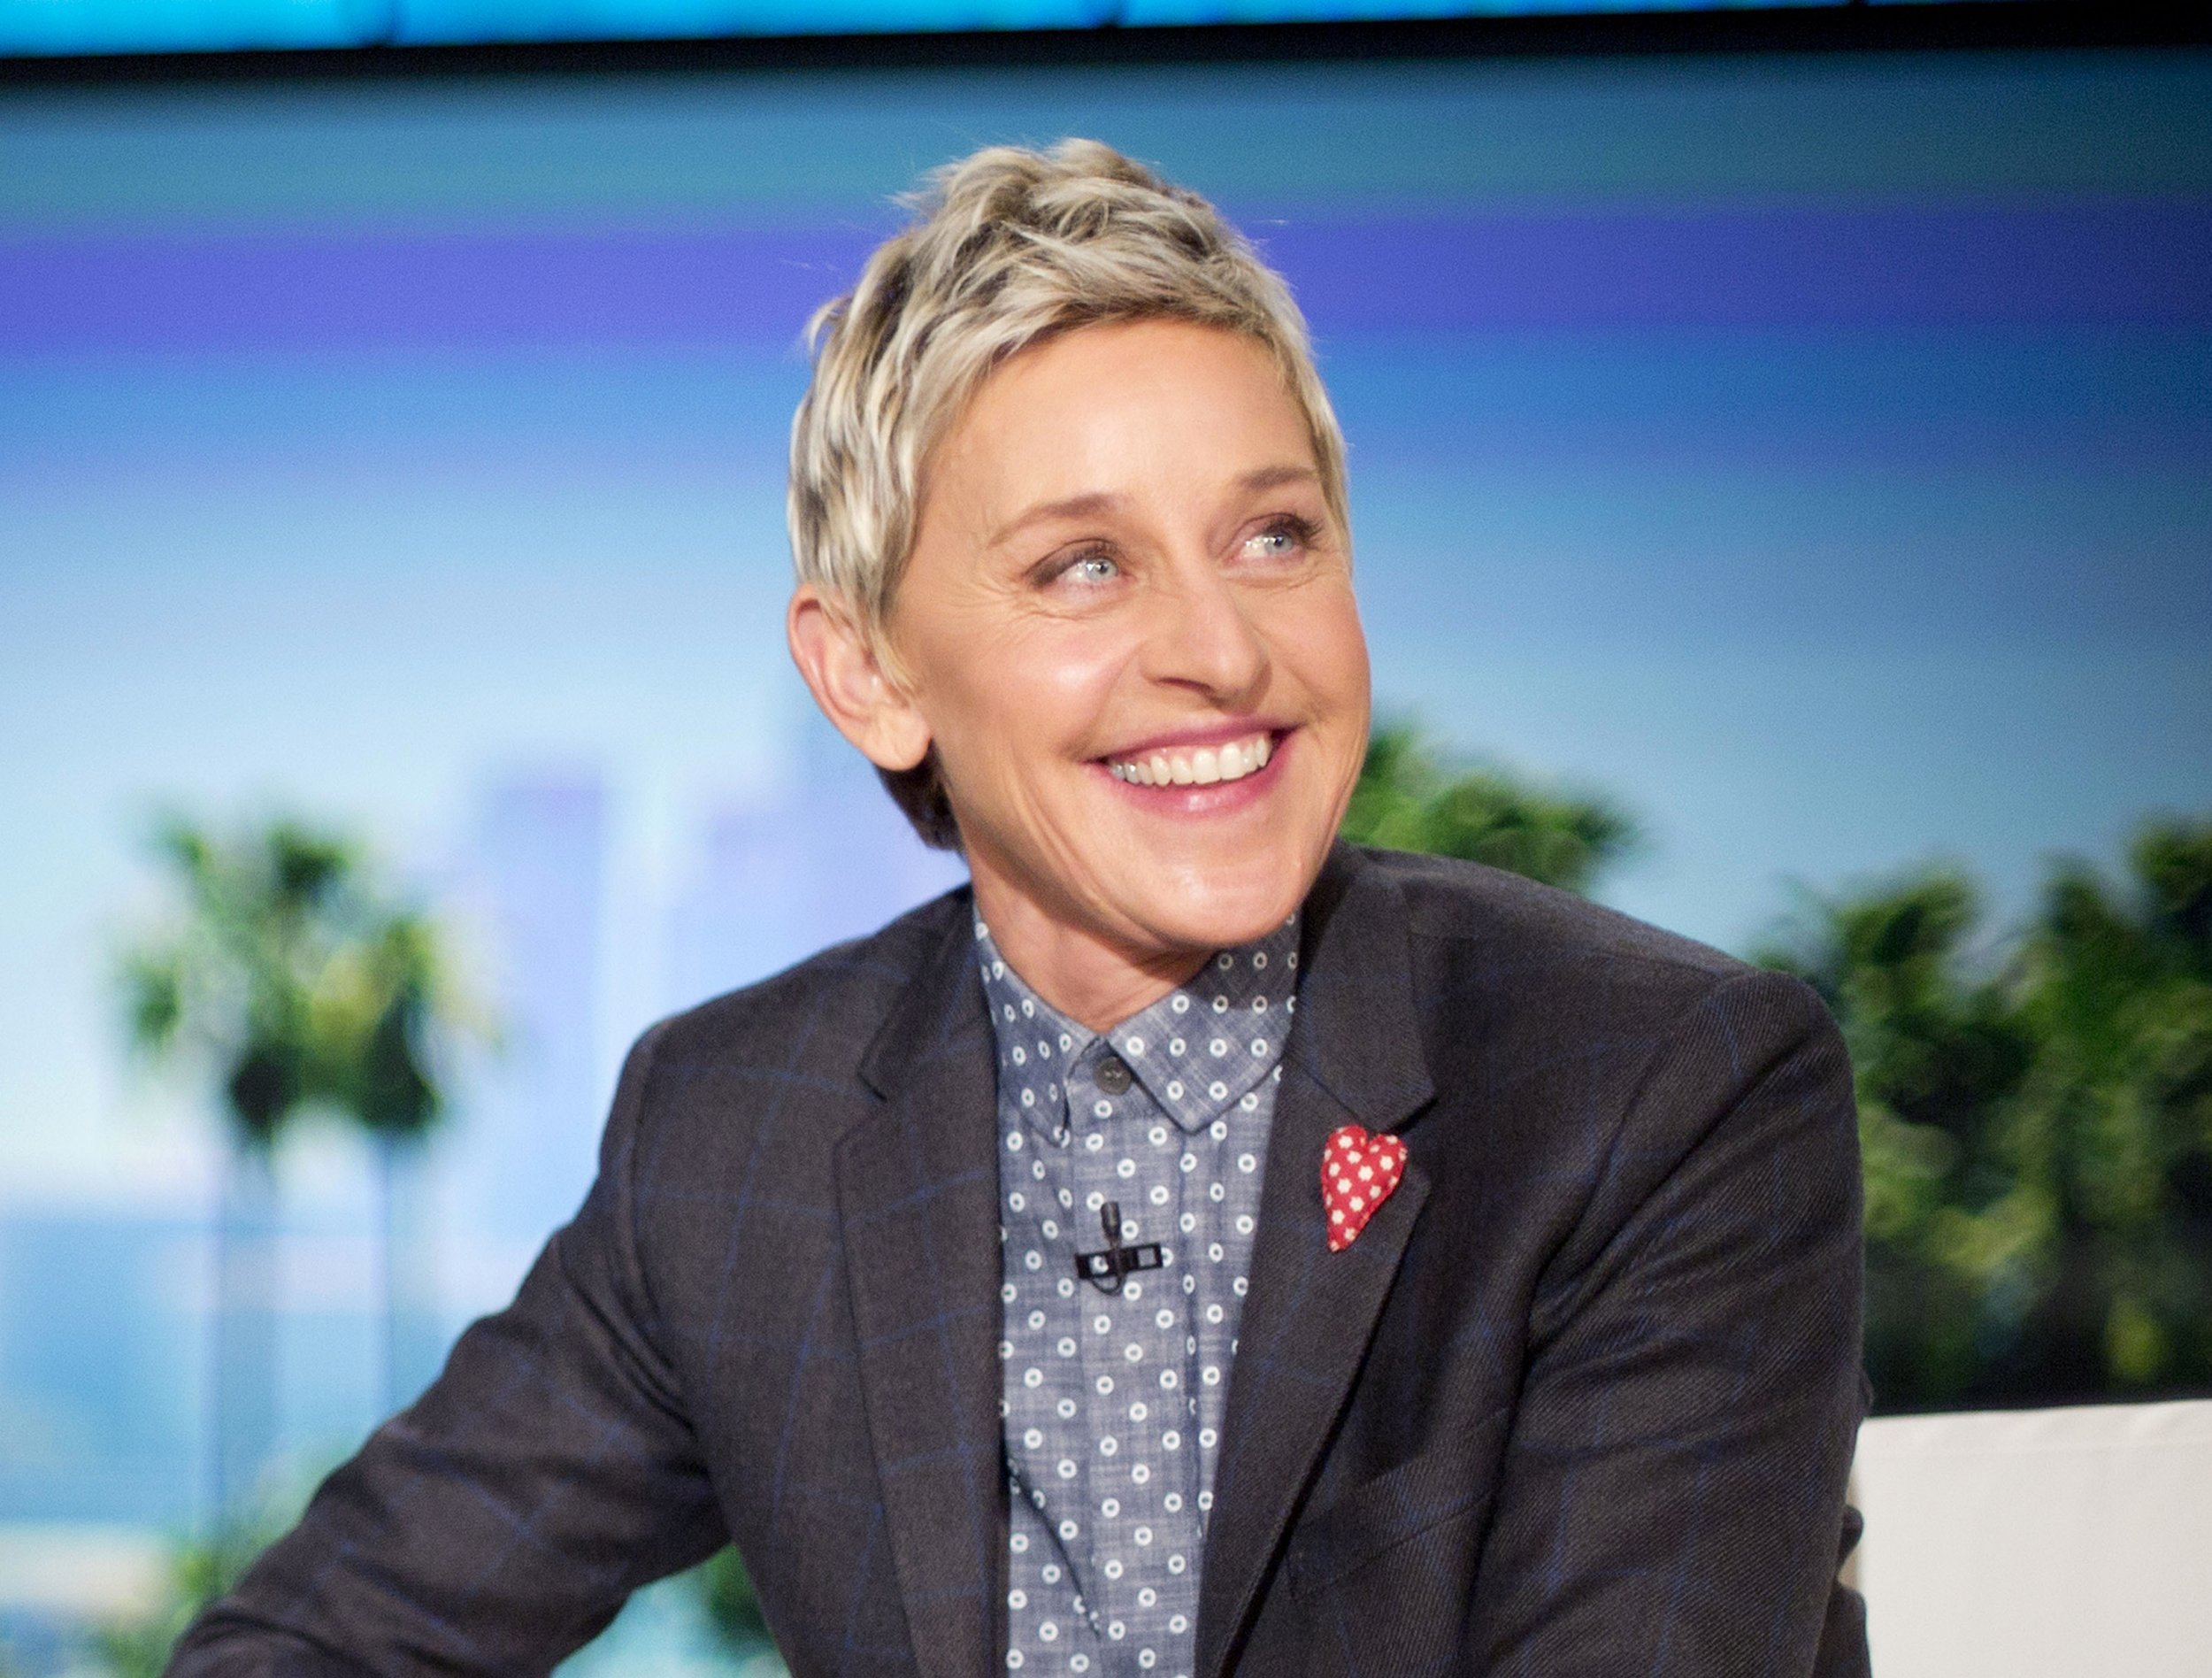 """FILE - In this Feb. 11, 2016 file photo, host Ellen DeGeneres appears during a taping of """"The Ellen DeGeneres Show,"""" in Burbank, Calif. DeGeneres voices the character of Dory in the Disney Pixar animated feature, """"Finding Dory."""" (AP Photo/Pablo Martinez Monsivais, File)"""